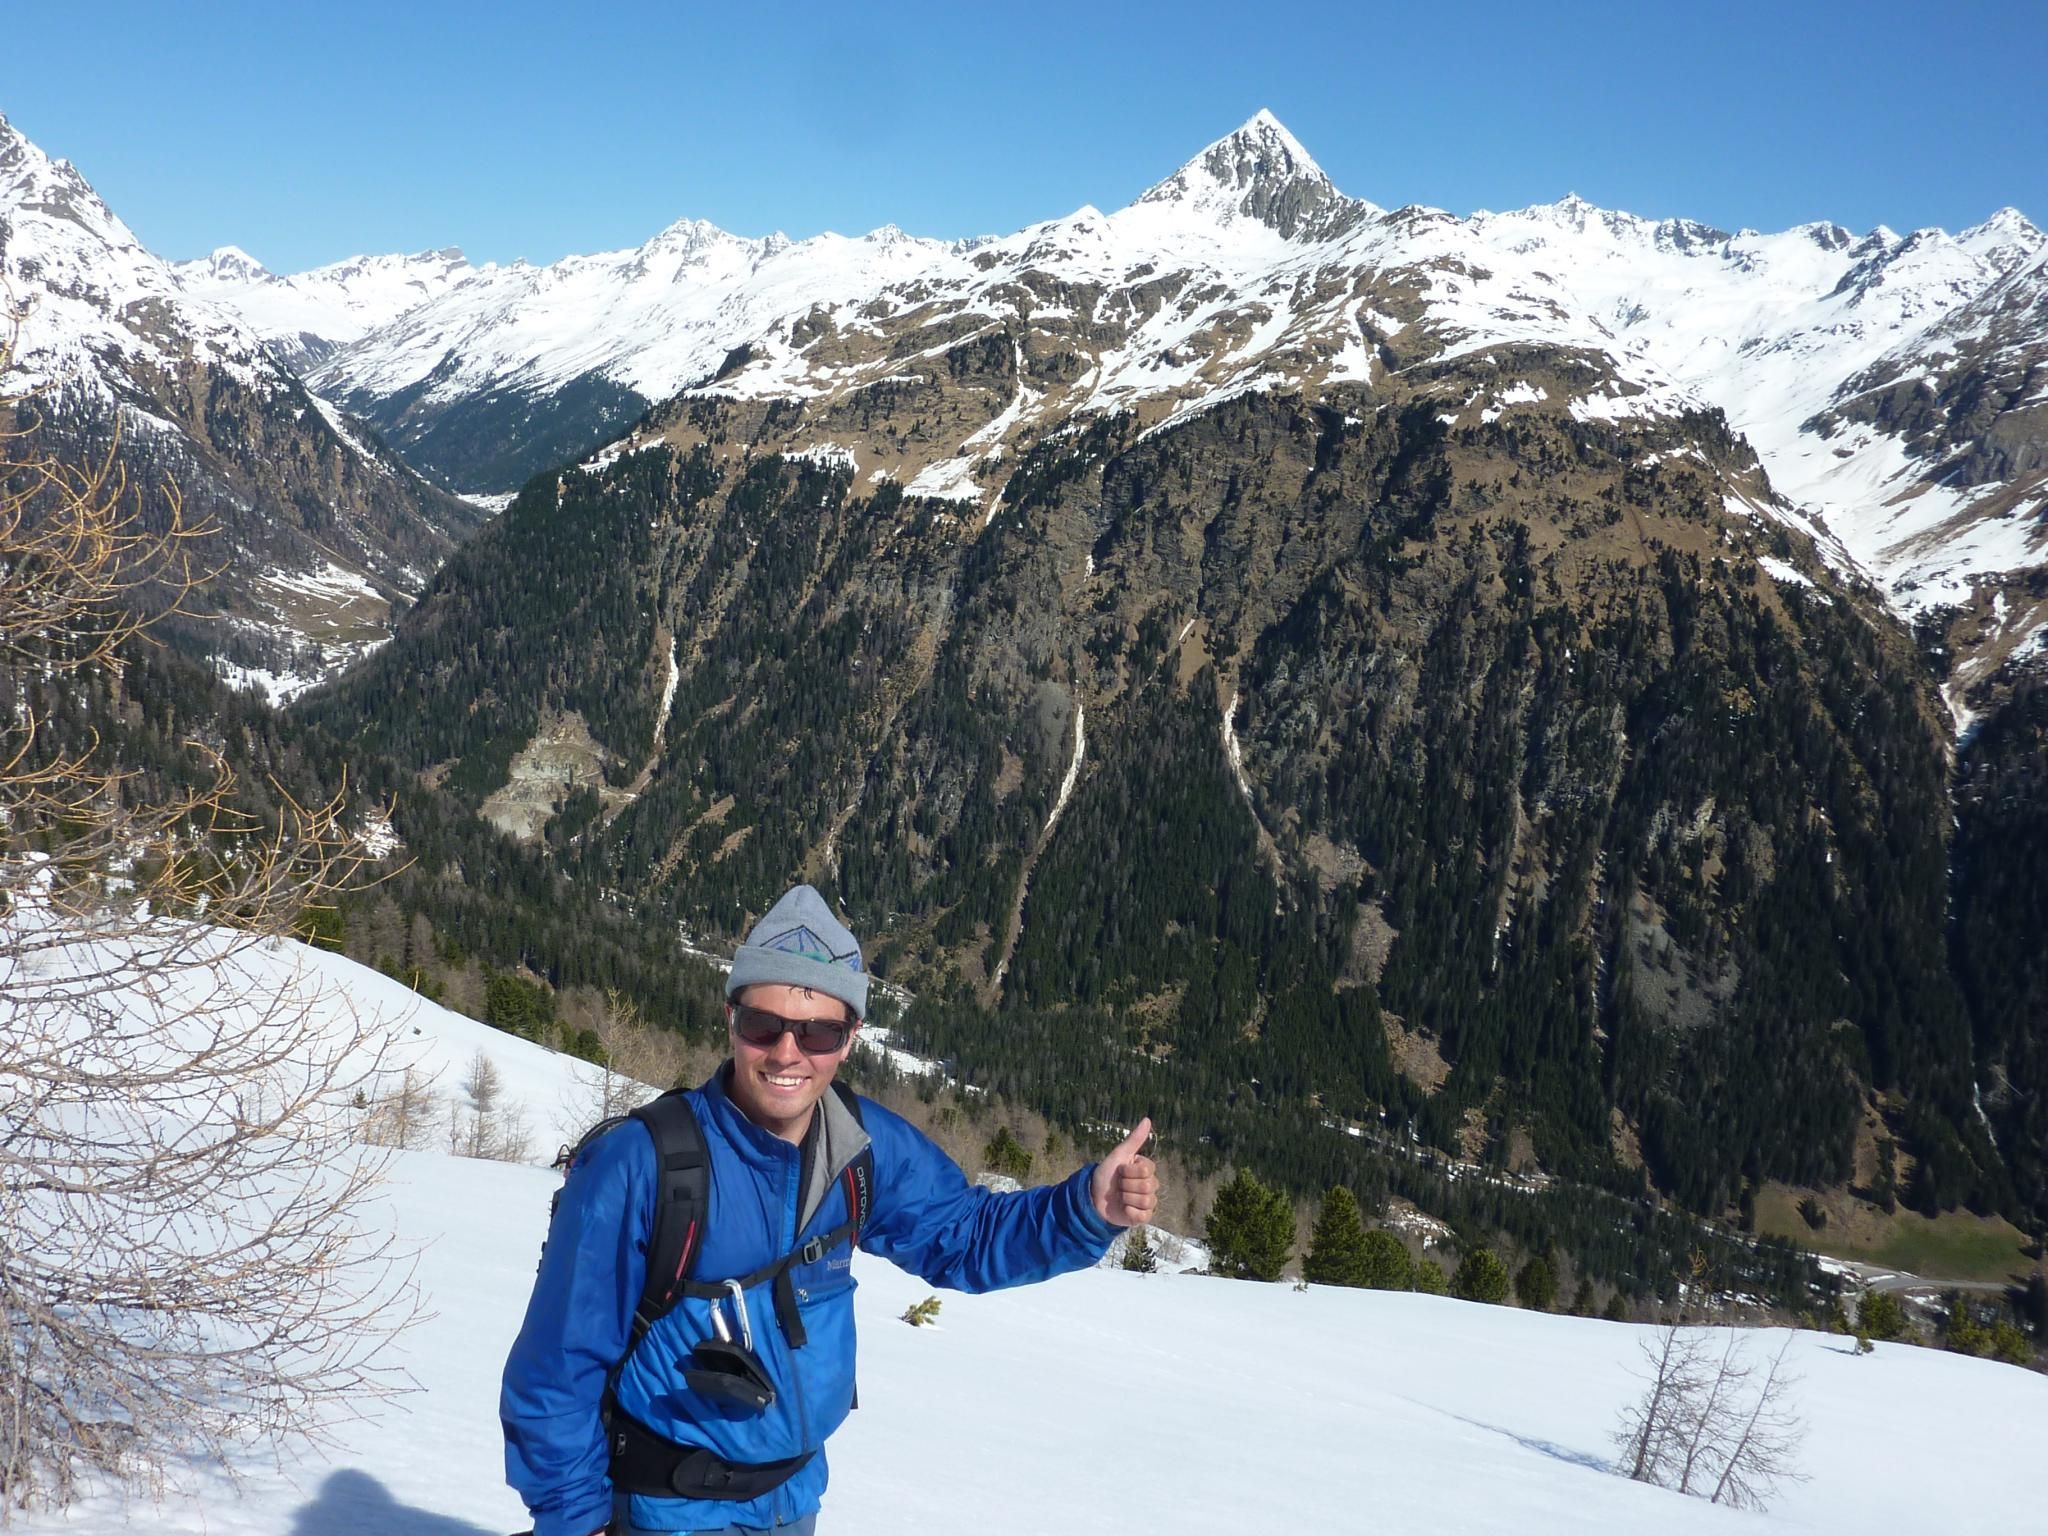 Ski touring with your private guide